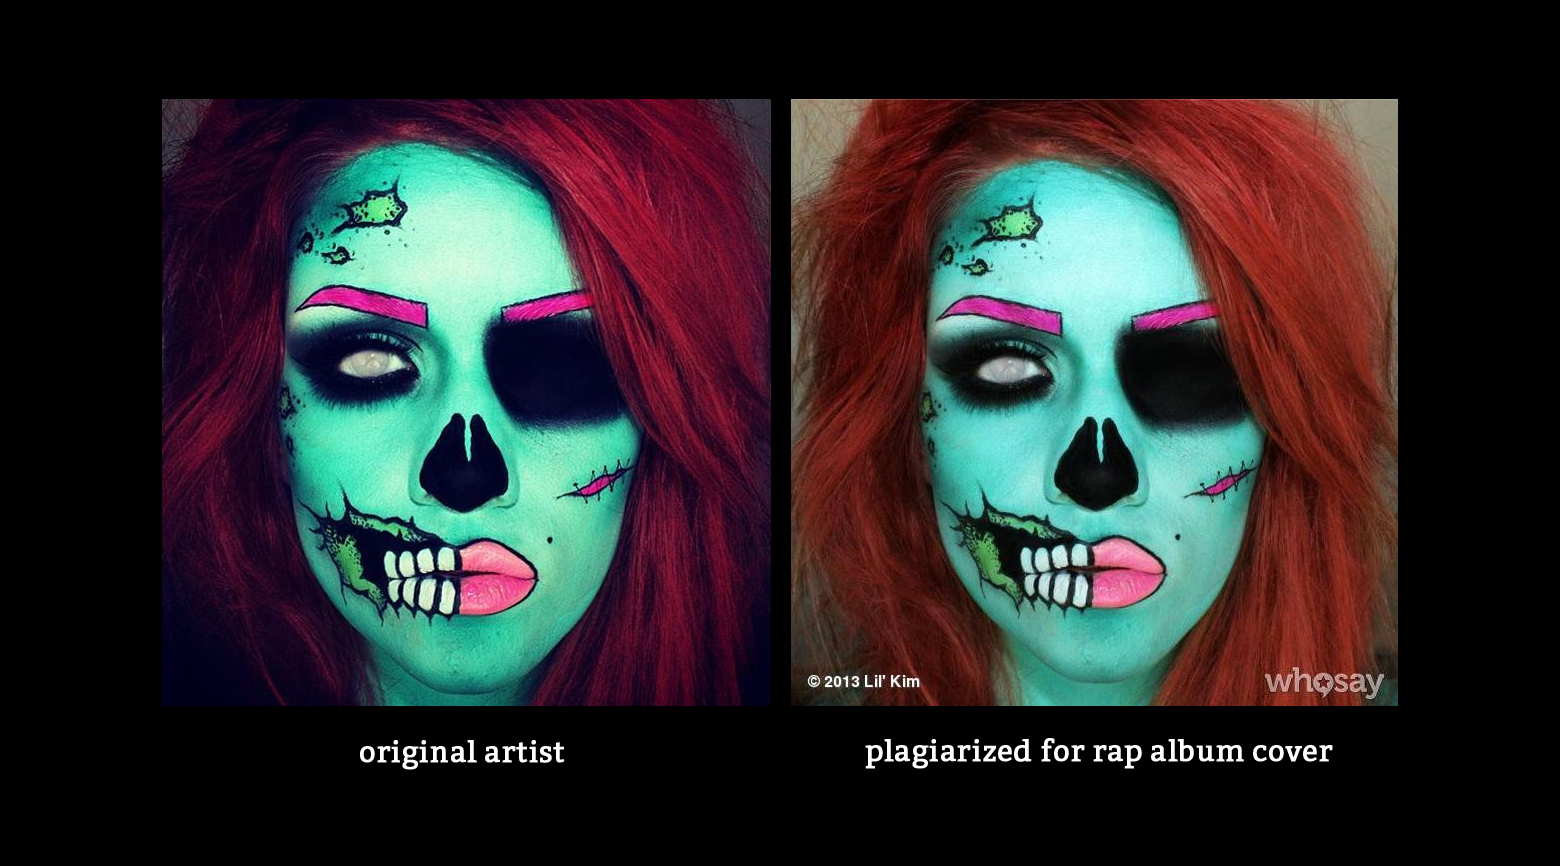 plagiarized art